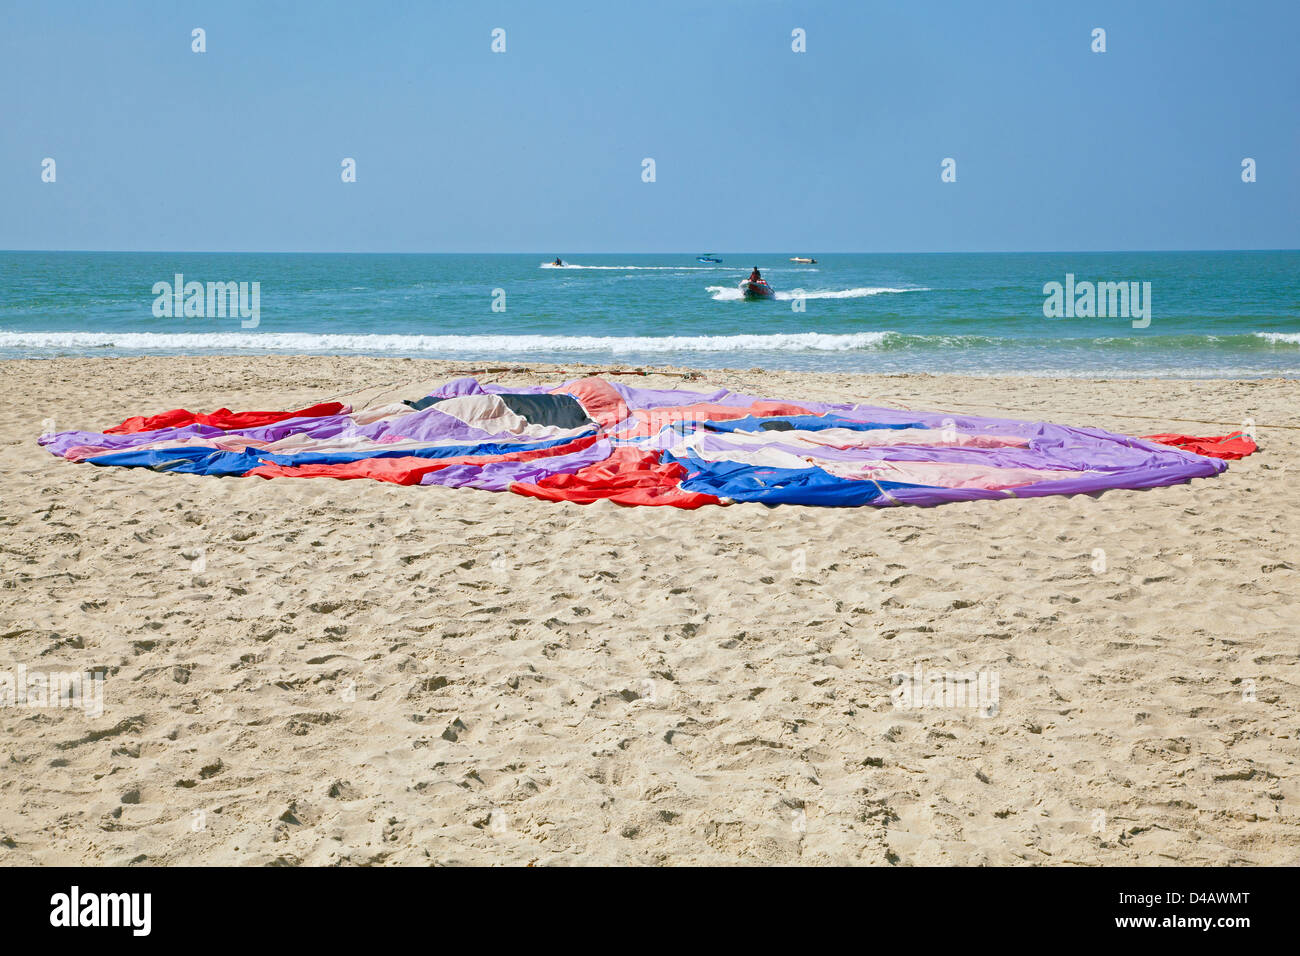 Generic beach landscape of seaside activity and sports of parachute laid flat on beach to dry in hot indian sun Stock Photo